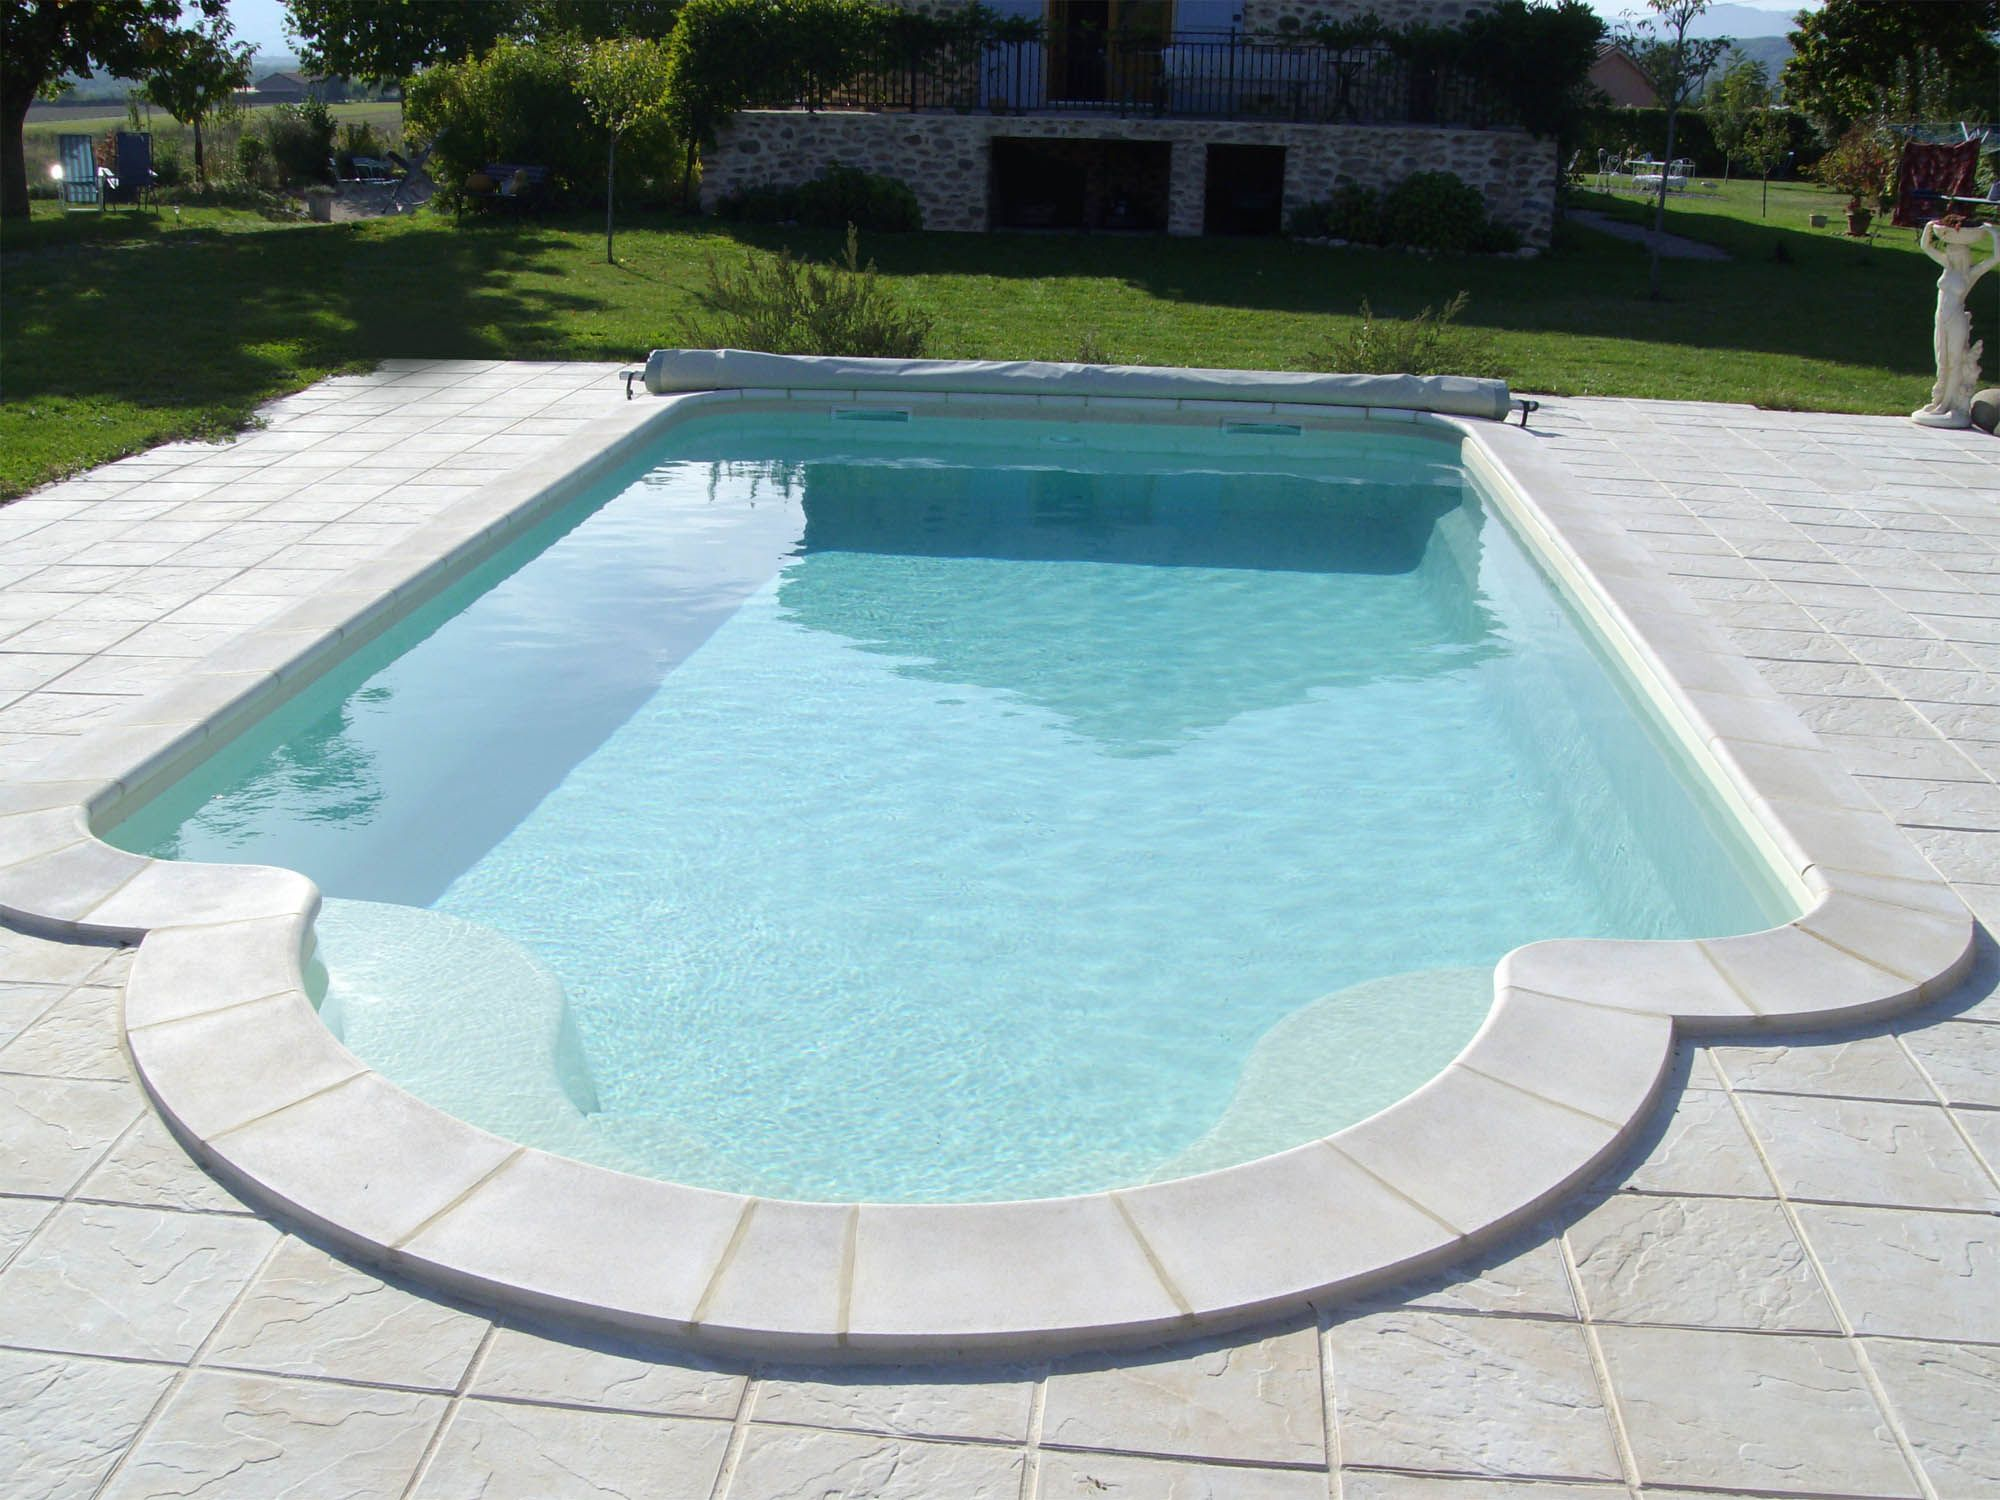 Piscine coque polyester variation fabrication fran aise for Coque pour piscine enterree